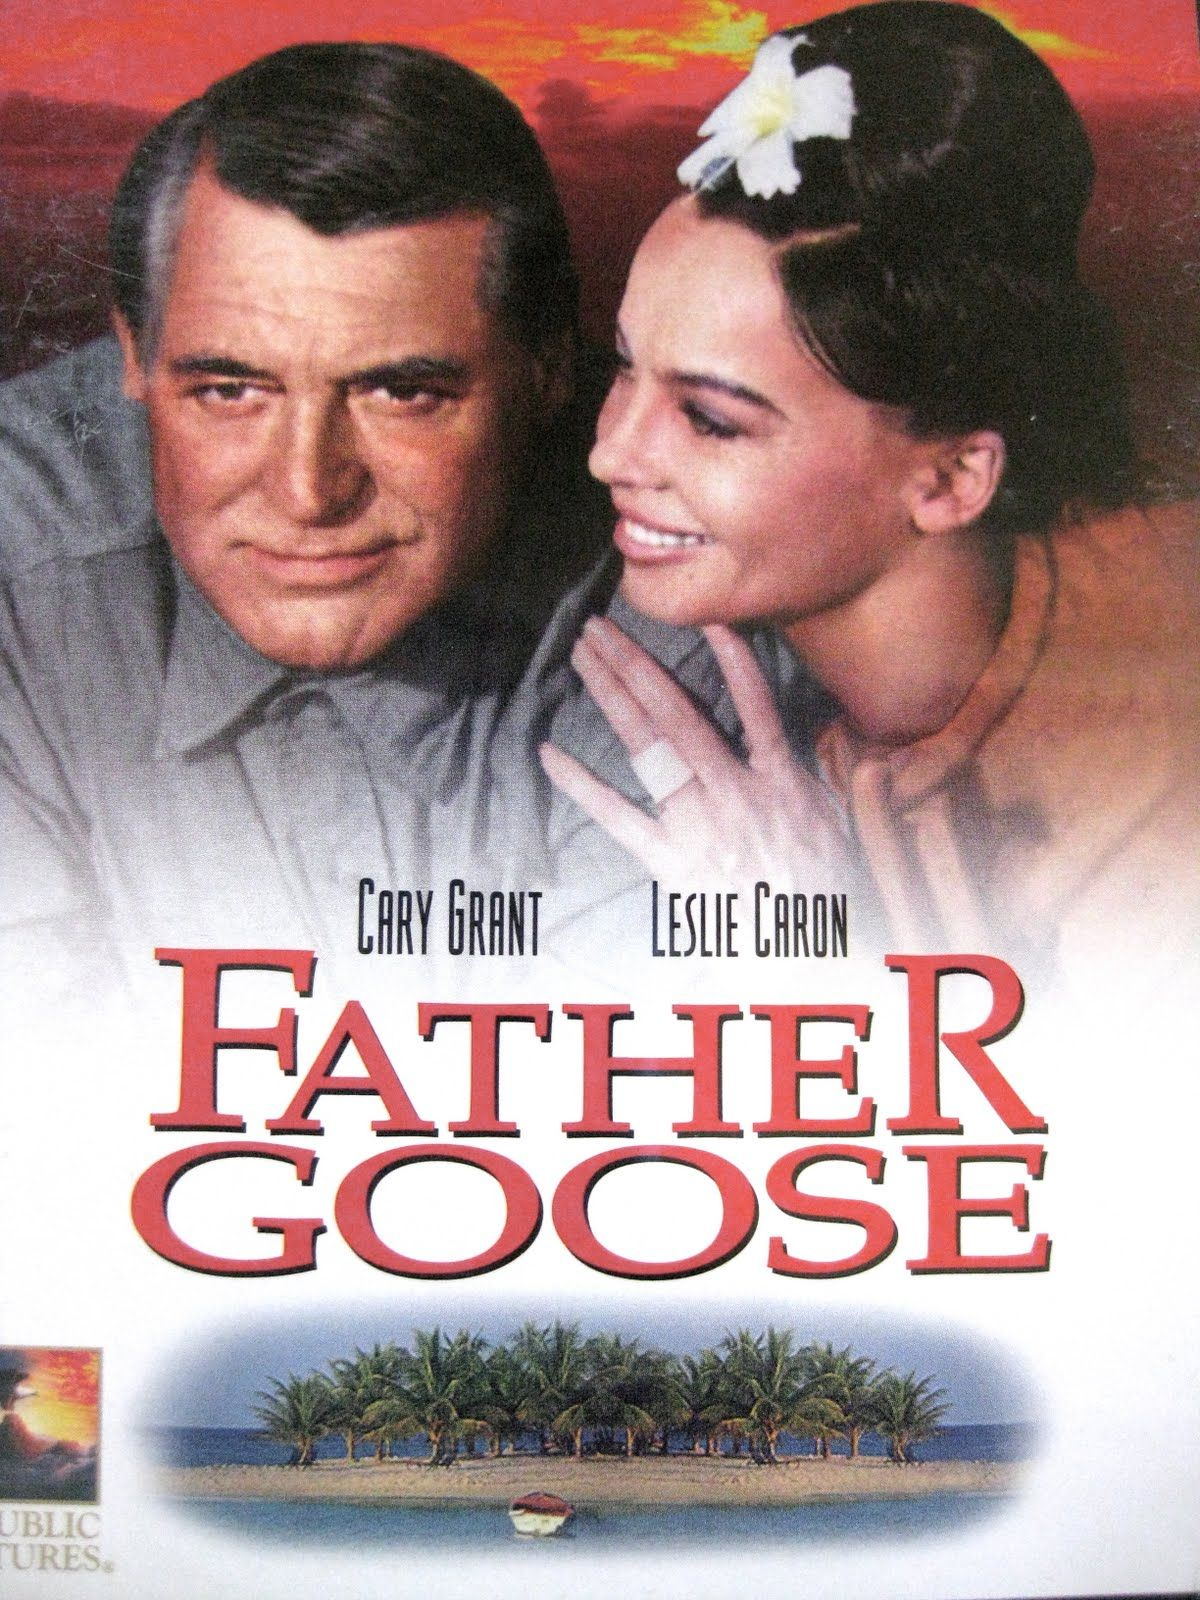 Image result for father goose movie poster